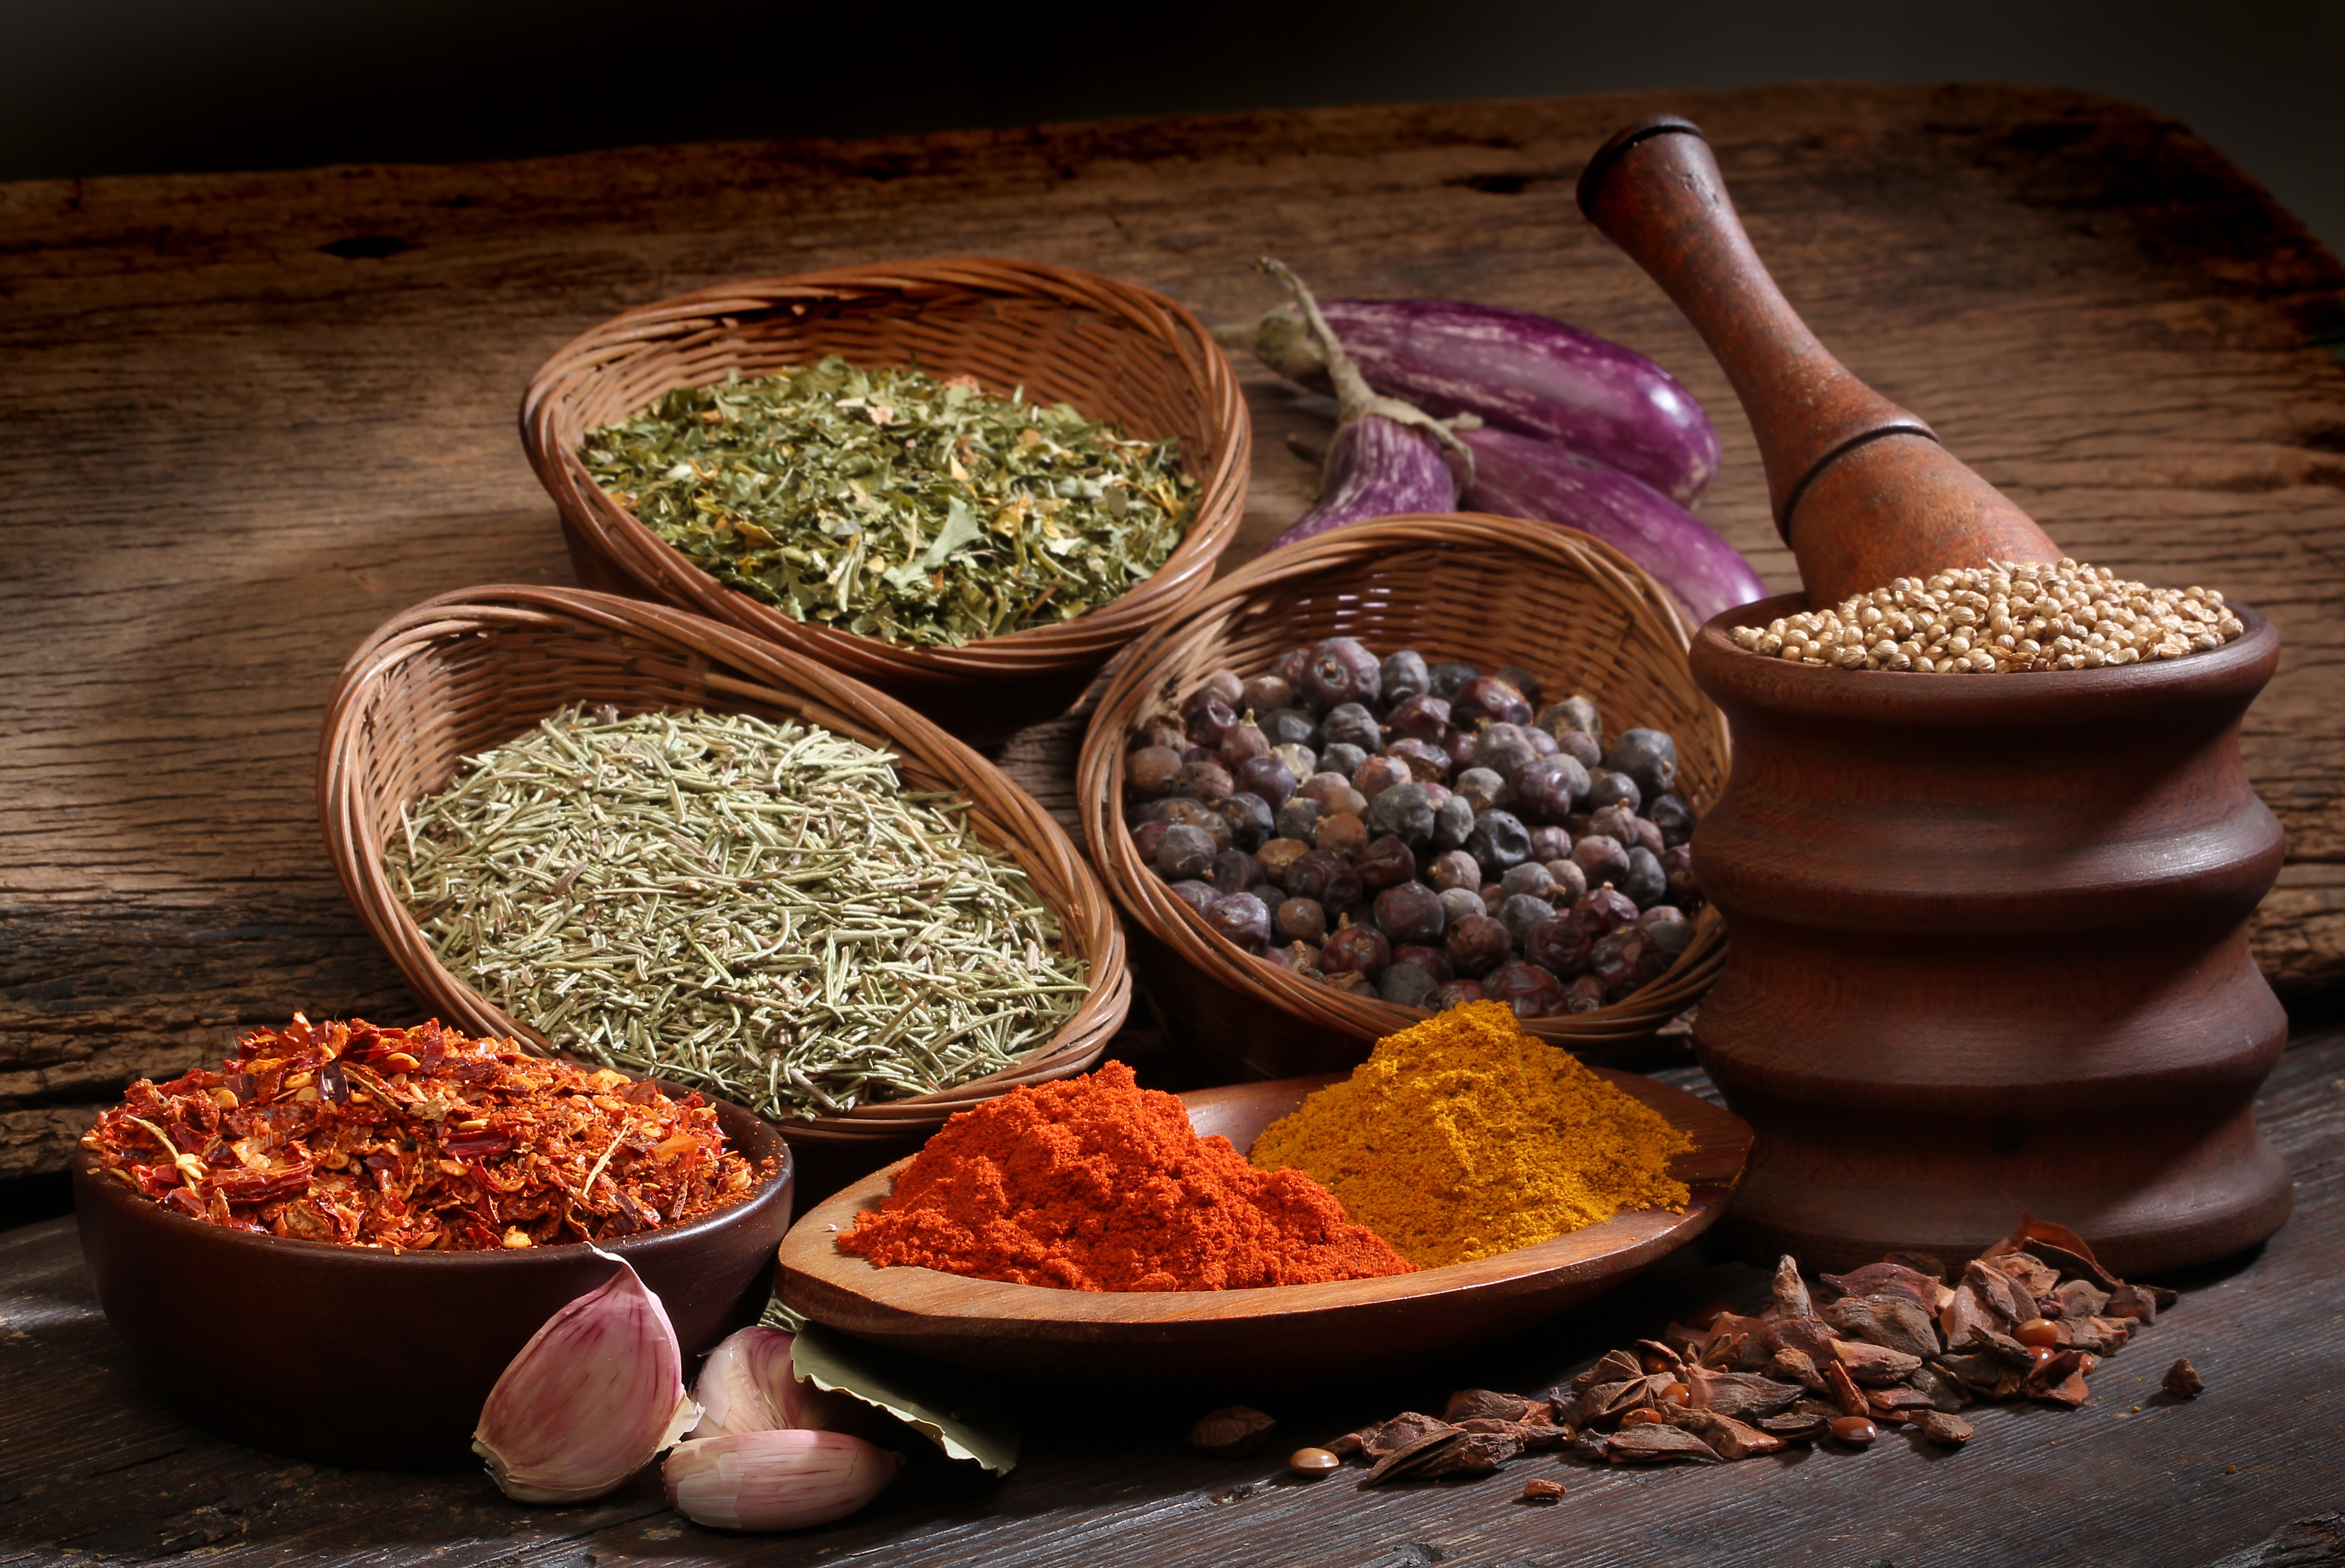 Herbs And Spices 4k Ultra HD Wallpaper